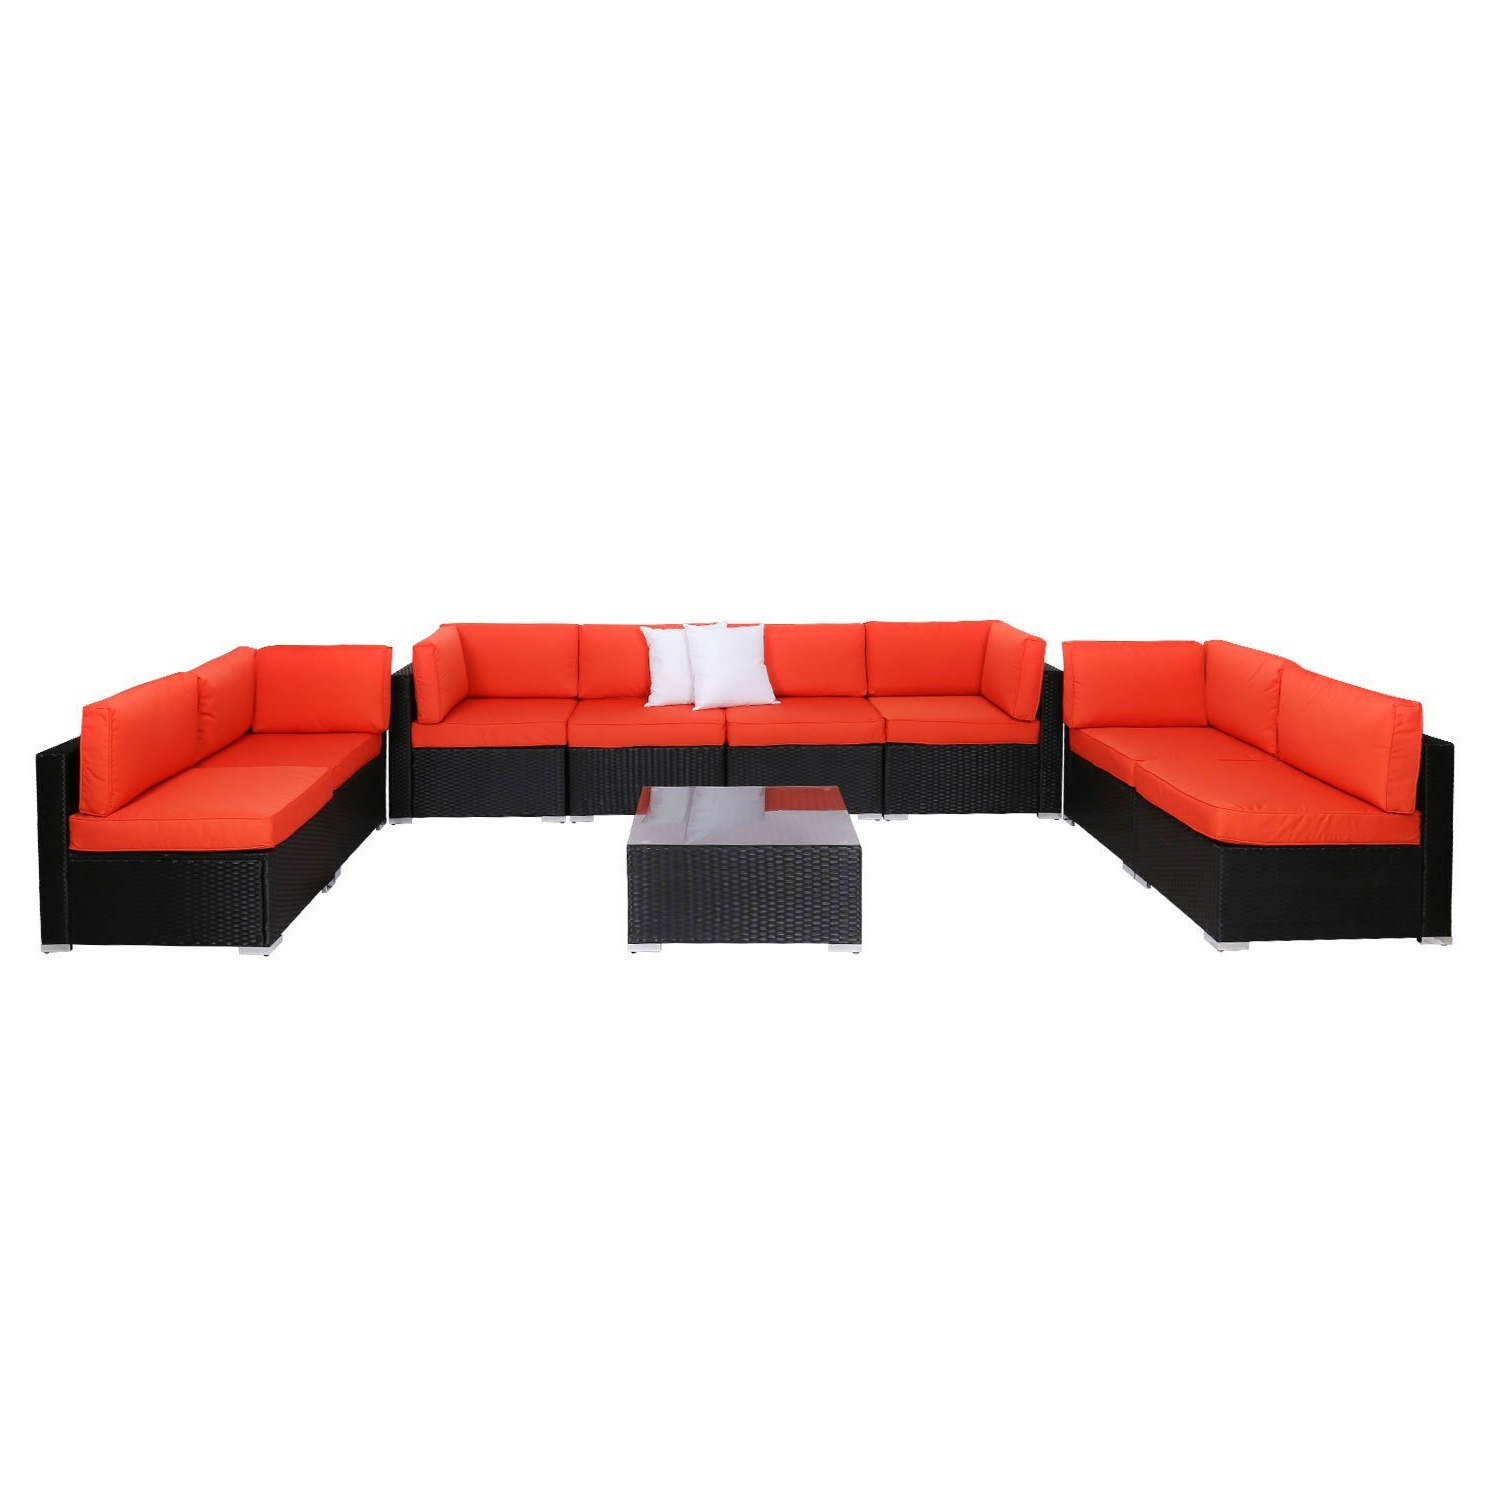 Delano 2 Piece Sectionals With Laf Oversized Chaise Regarding Most Popular Cheap Ashley Furniture Sectional Sofas, Find Ashley Furniture (View 10 of 20)